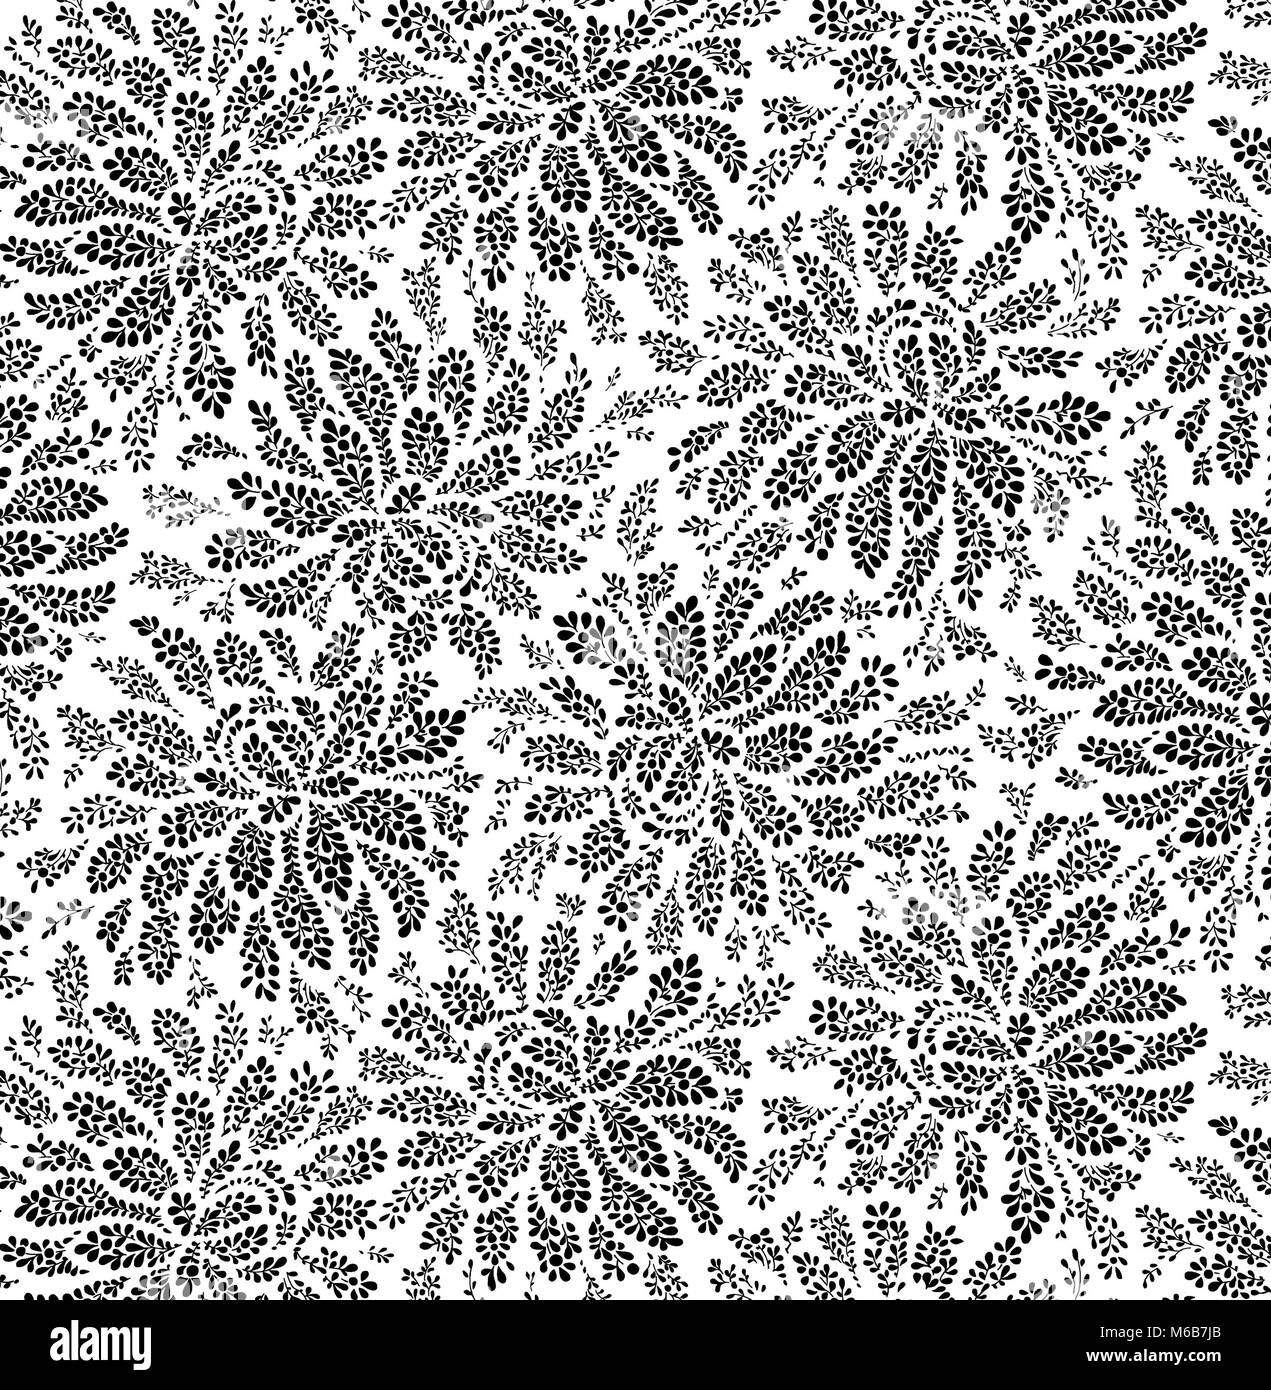 Paisley Pattern Black And White Stock Photos Images Alamy